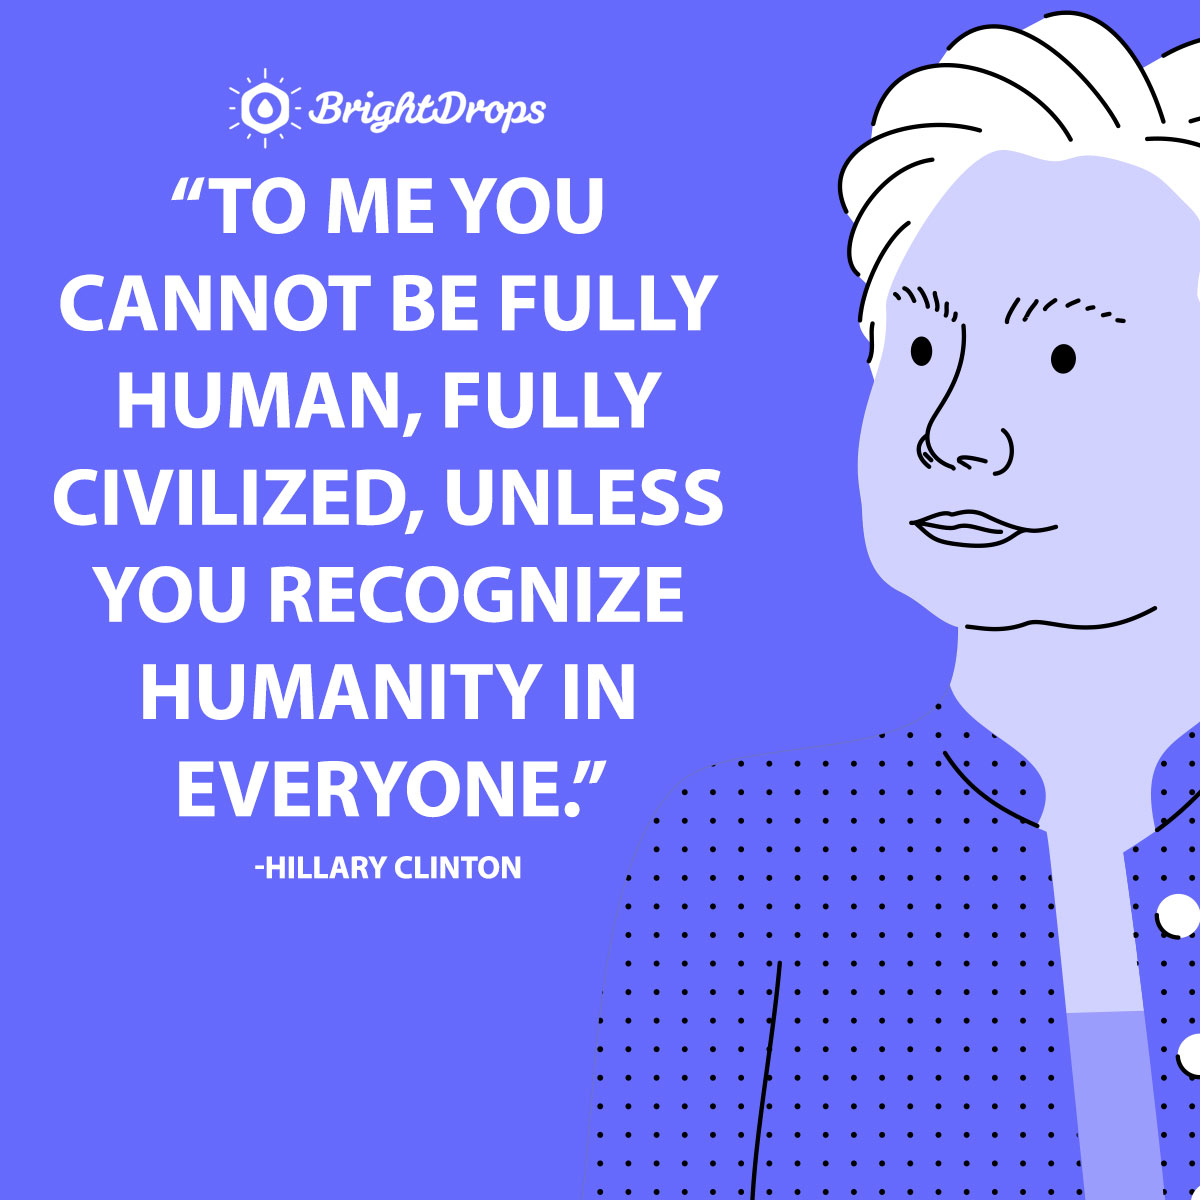 To me you cannot be fully human, fully civilized, unless you recognize humanity in everyone. -Hillary Clinton